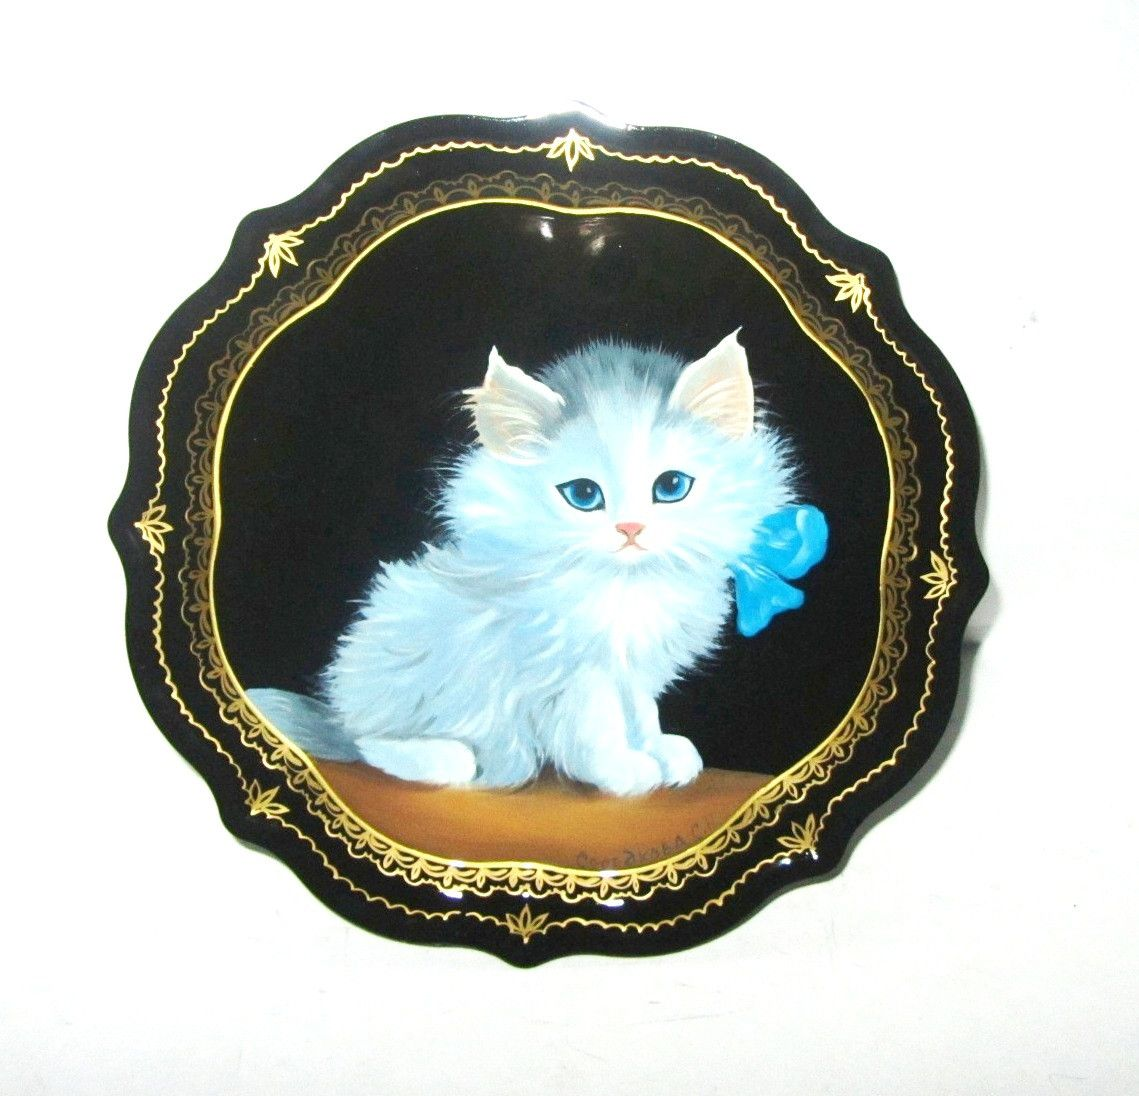 """Souvenirs from N. Tagil / Tray """"Subject painting. Kitten with a bow"""", 19 cm"""